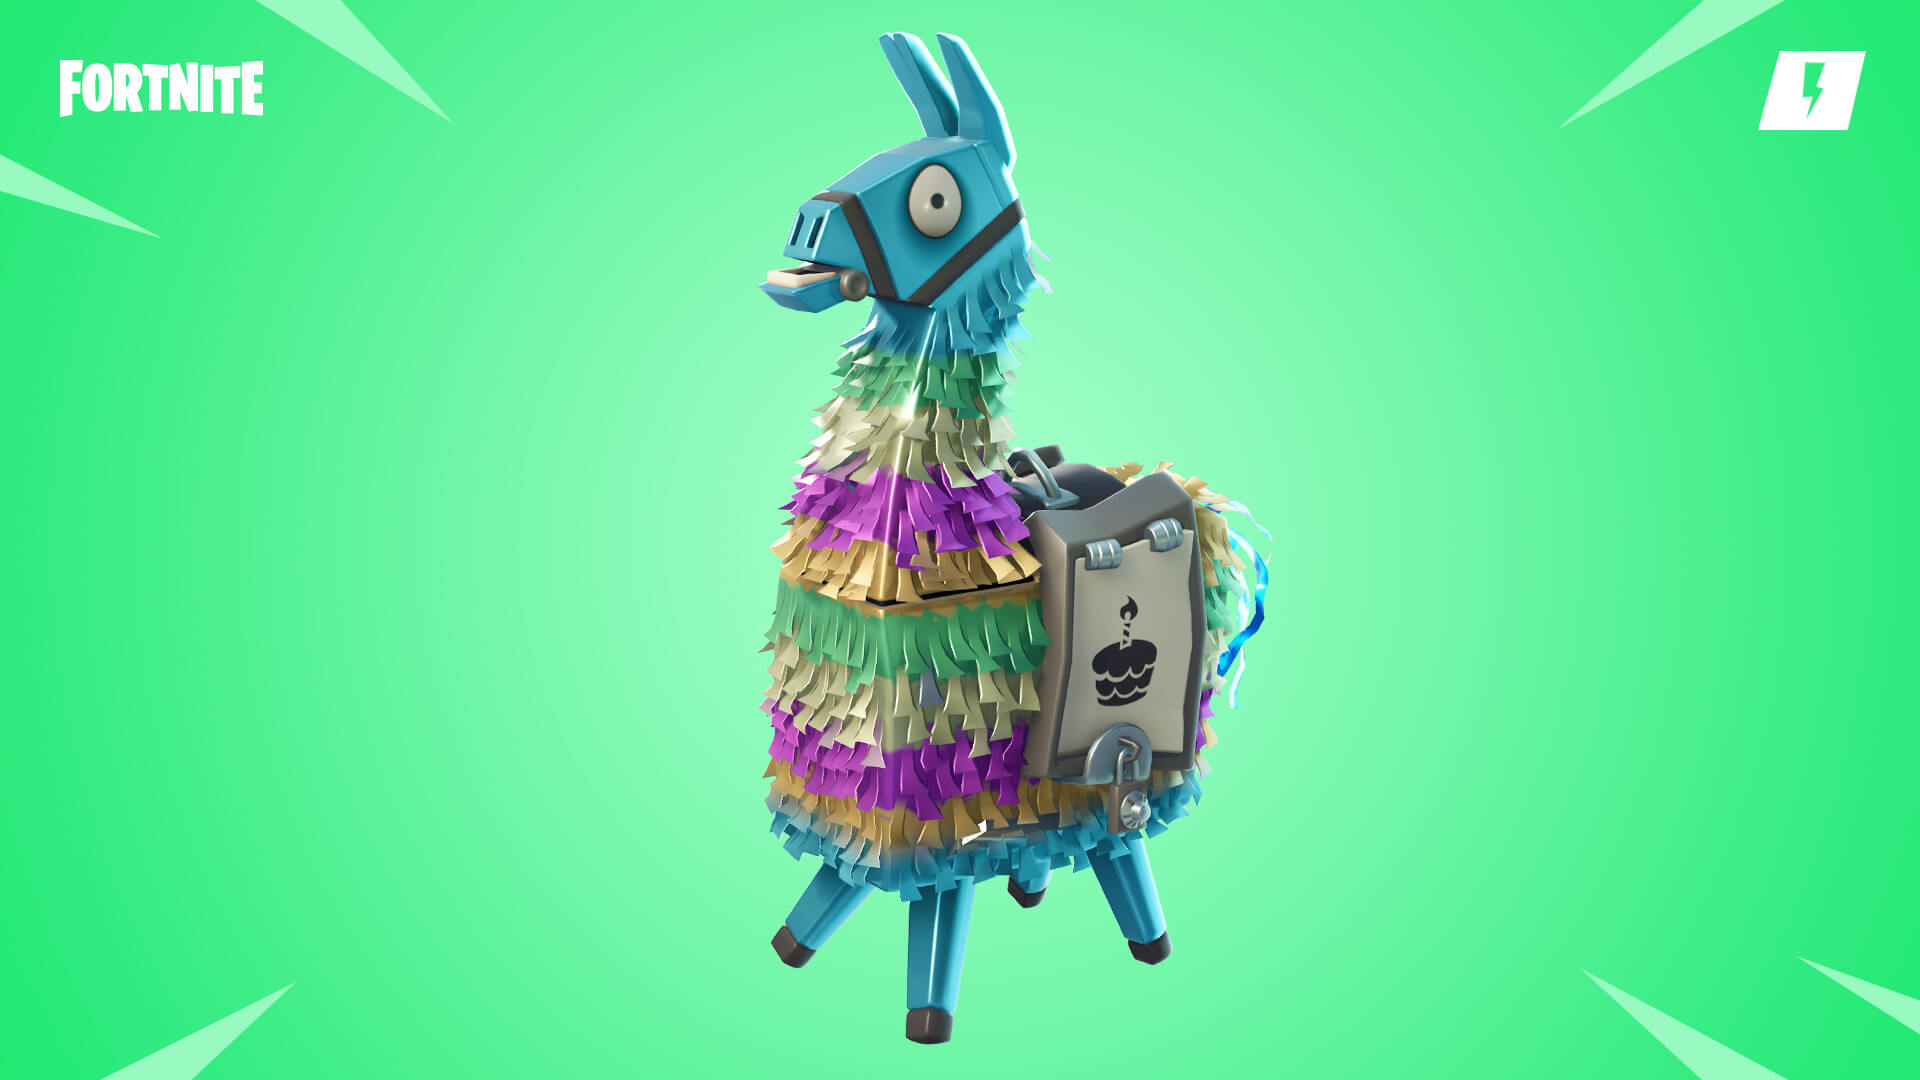 Fortnite player emotes, accidentally pings Loot Llama almost 2,000 miles away